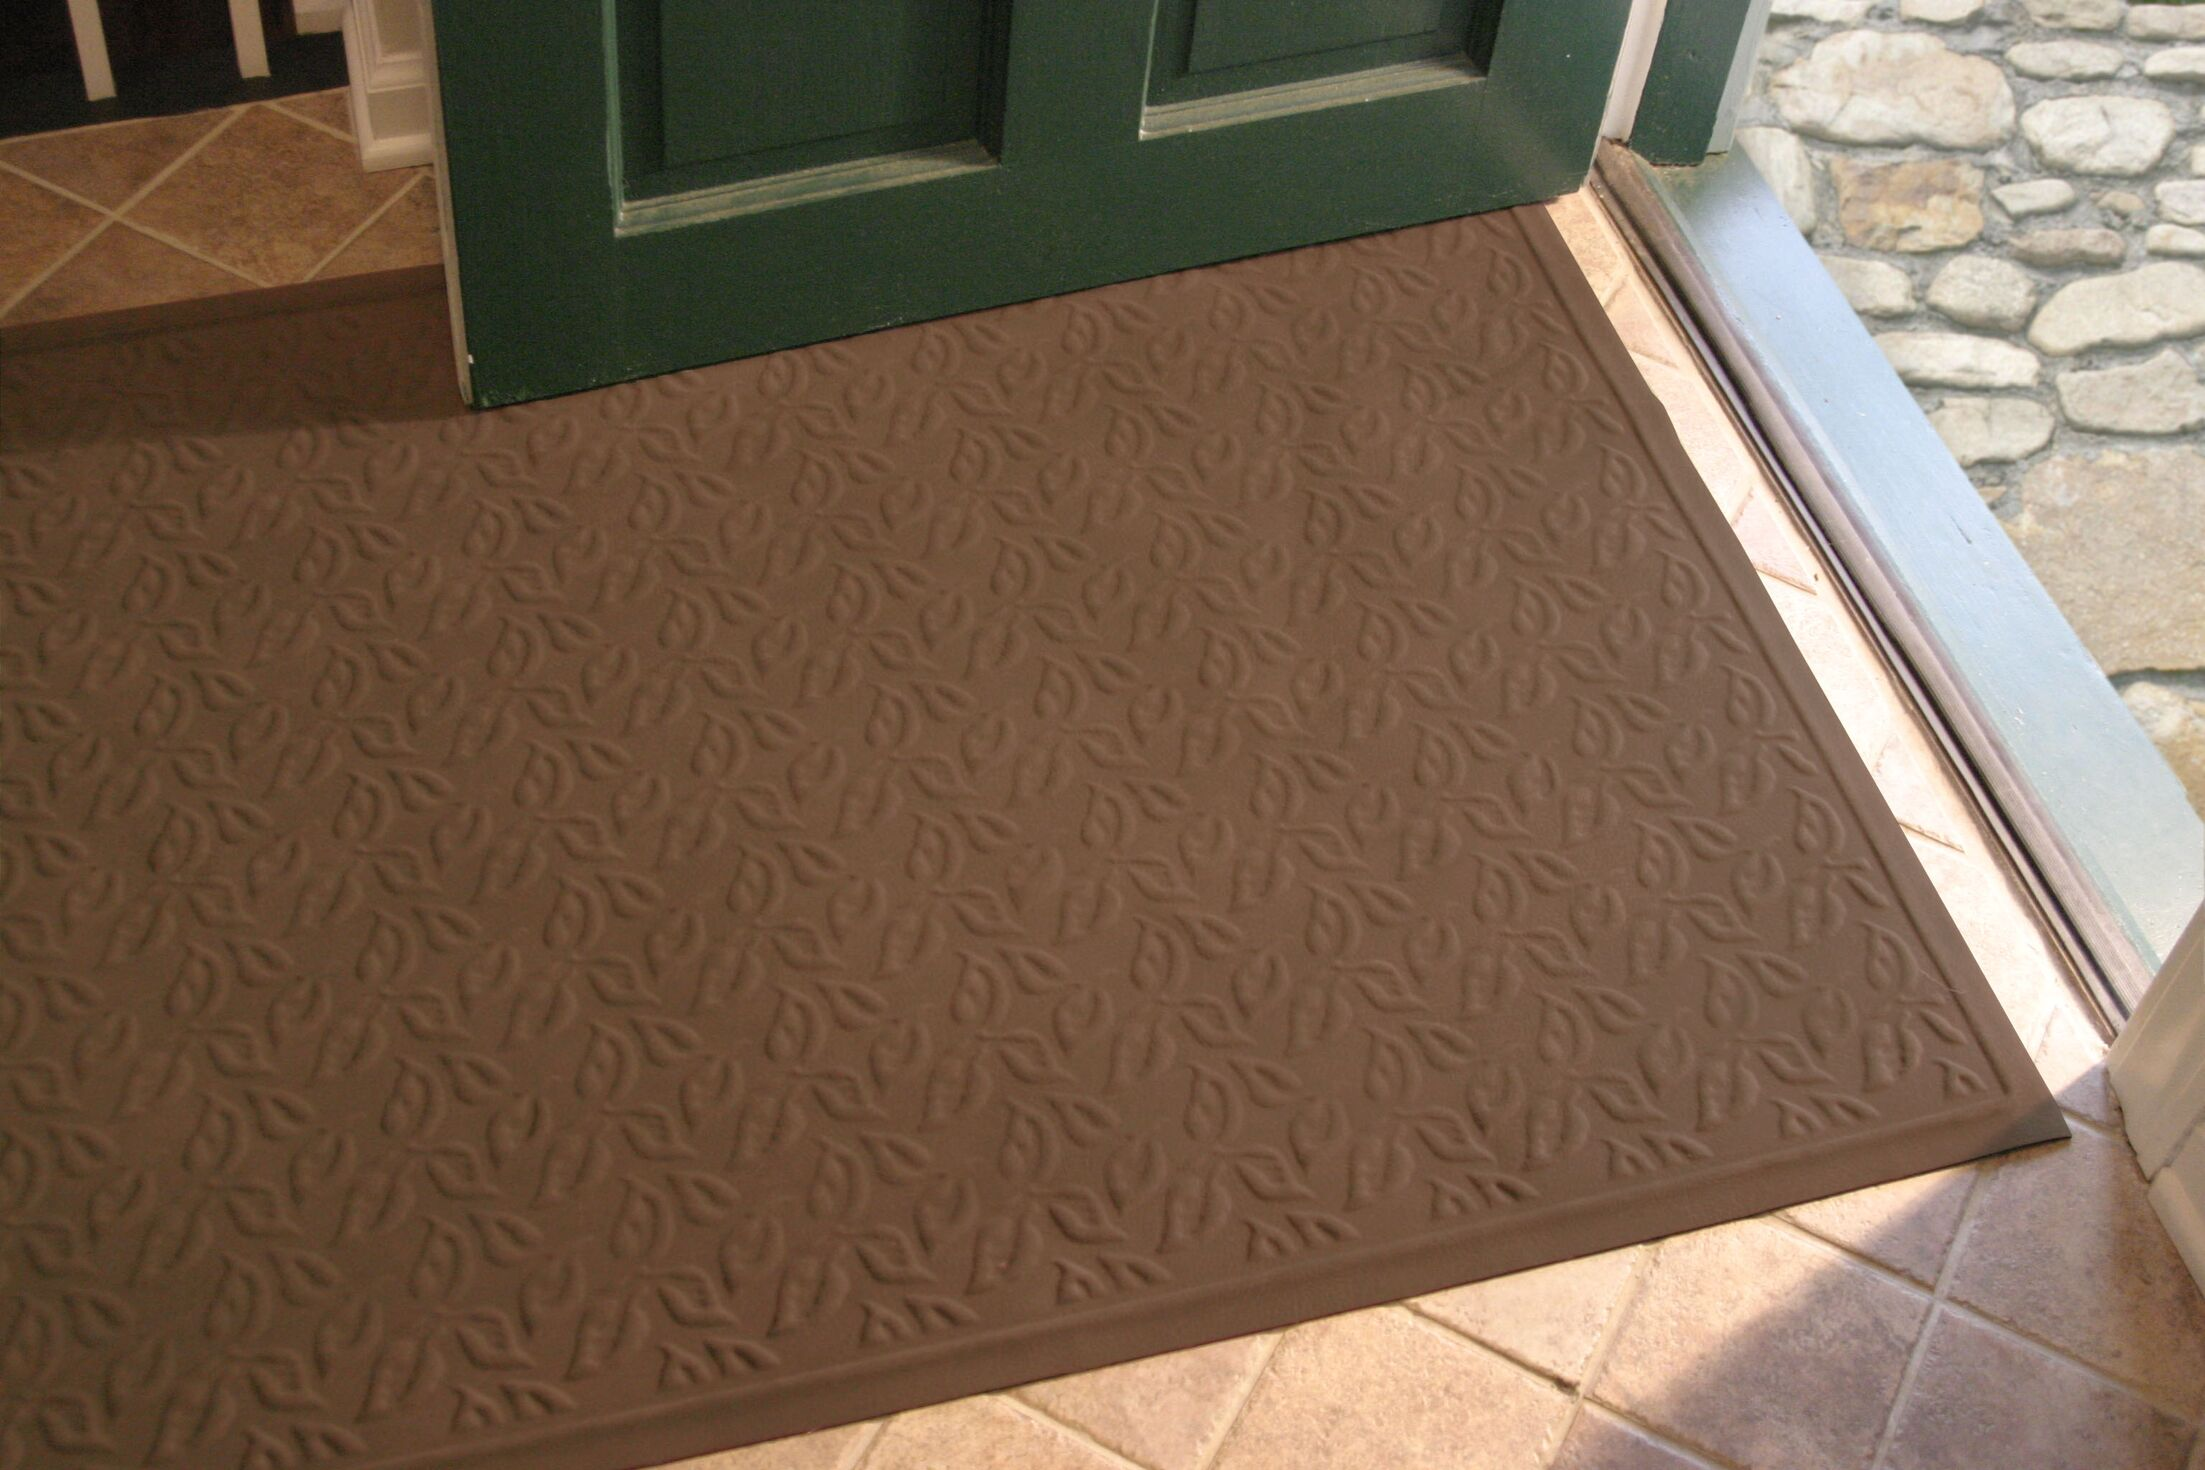 Soft Impressions Dogwood Leaf Doormat Mat Size: Rectangle 3' x 5', Color: Montego Chocolate